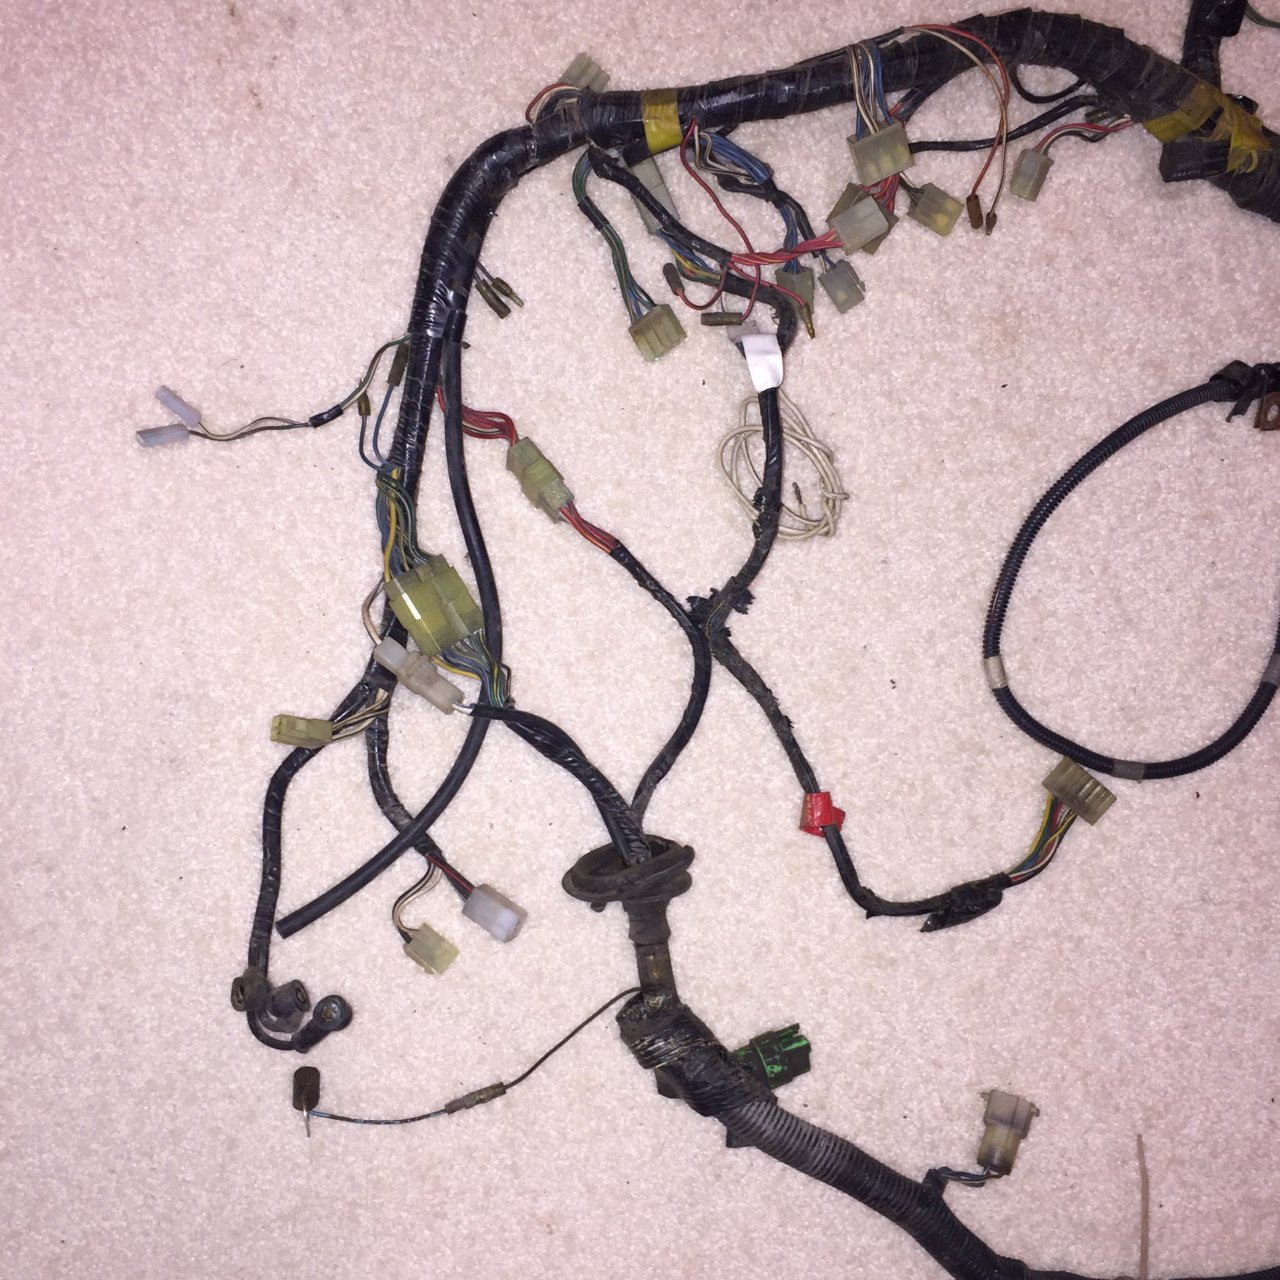 image-jpg Wiring Harness For Sale on pet harness, alpine stereo harness, oxygen sensor extension harness, electrical harness, radio harness, engine harness, battery harness, nakamichi harness, amp bypass harness, maxi-seal harness, suspension harness, fall protection harness, cable harness, pony harness, dog harness, safety harness, obd0 to obd1 conversion harness,